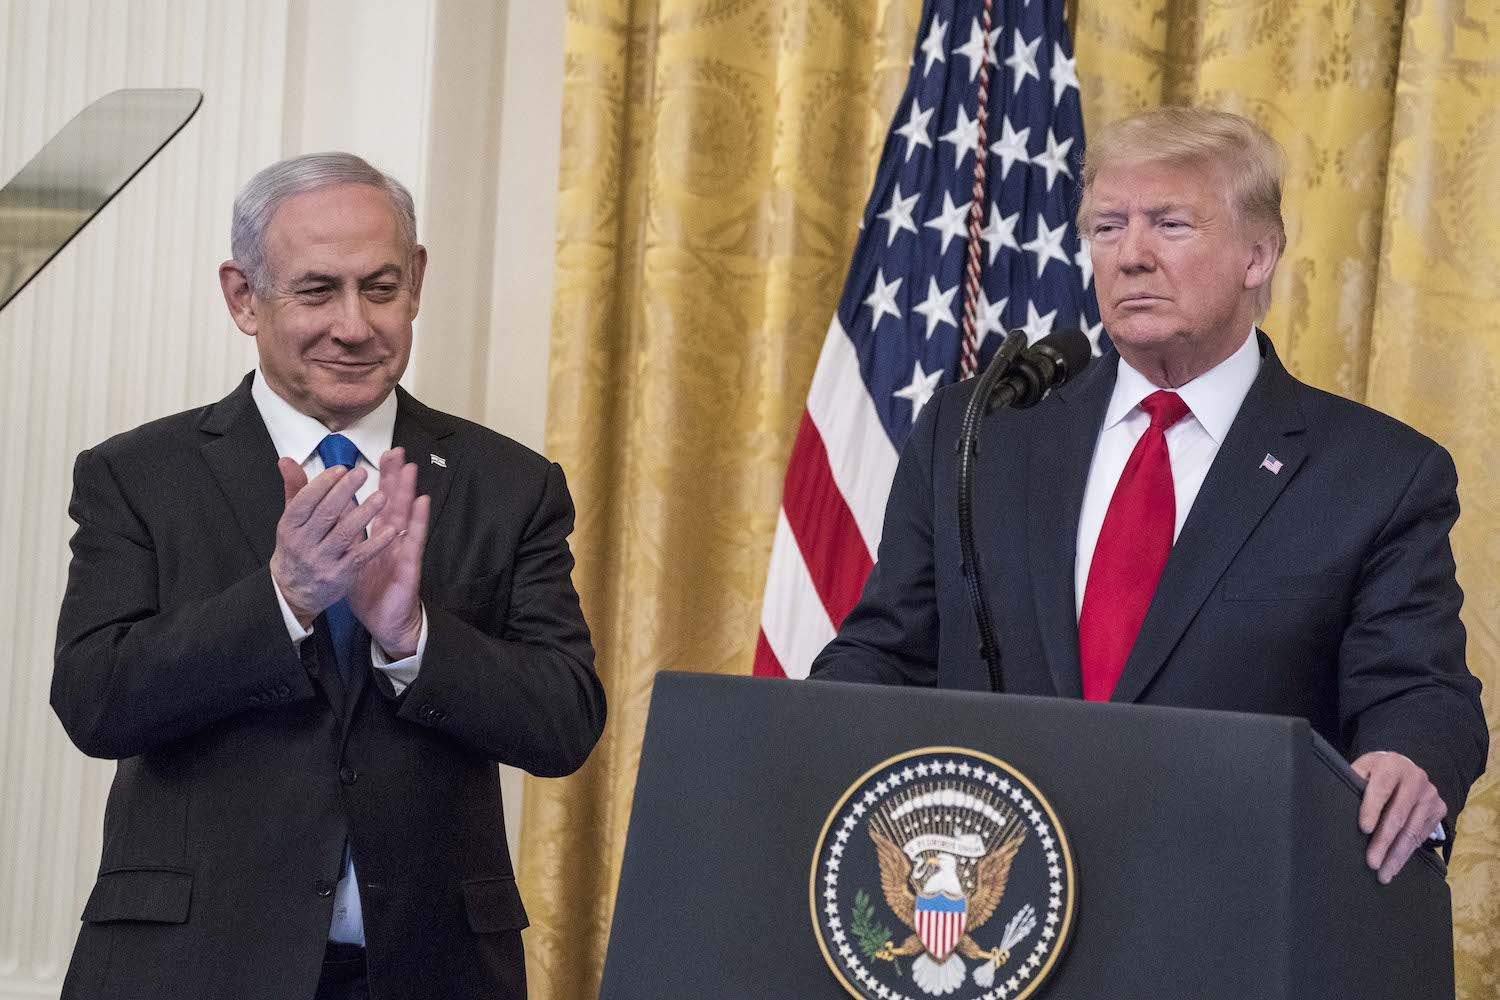 Trump's Middle East Peace Plan Will Make Israel's Occupation Permanent